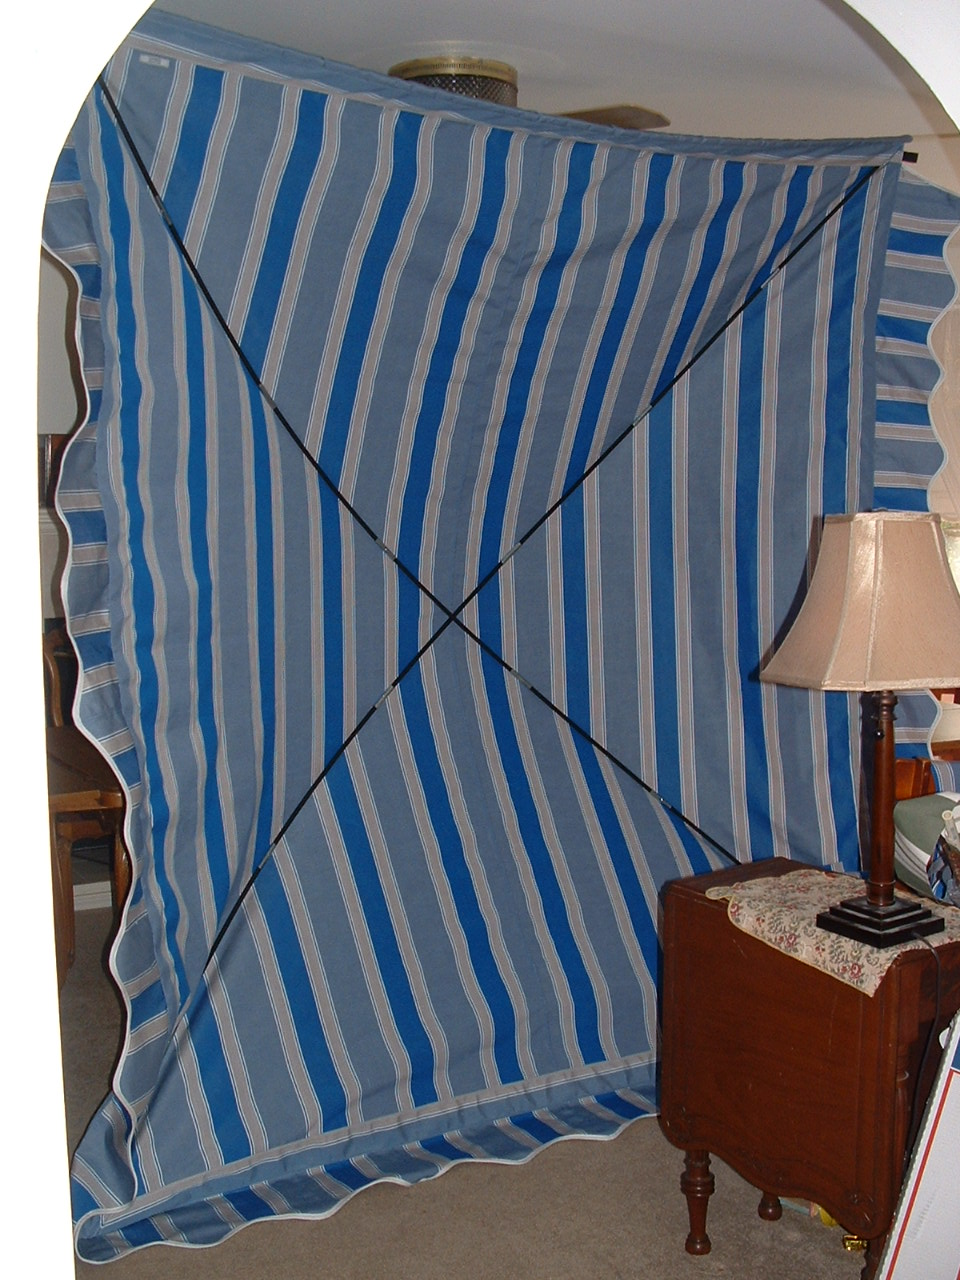 Vintage Awnings: Made In The USA Westfalia Bus Awning